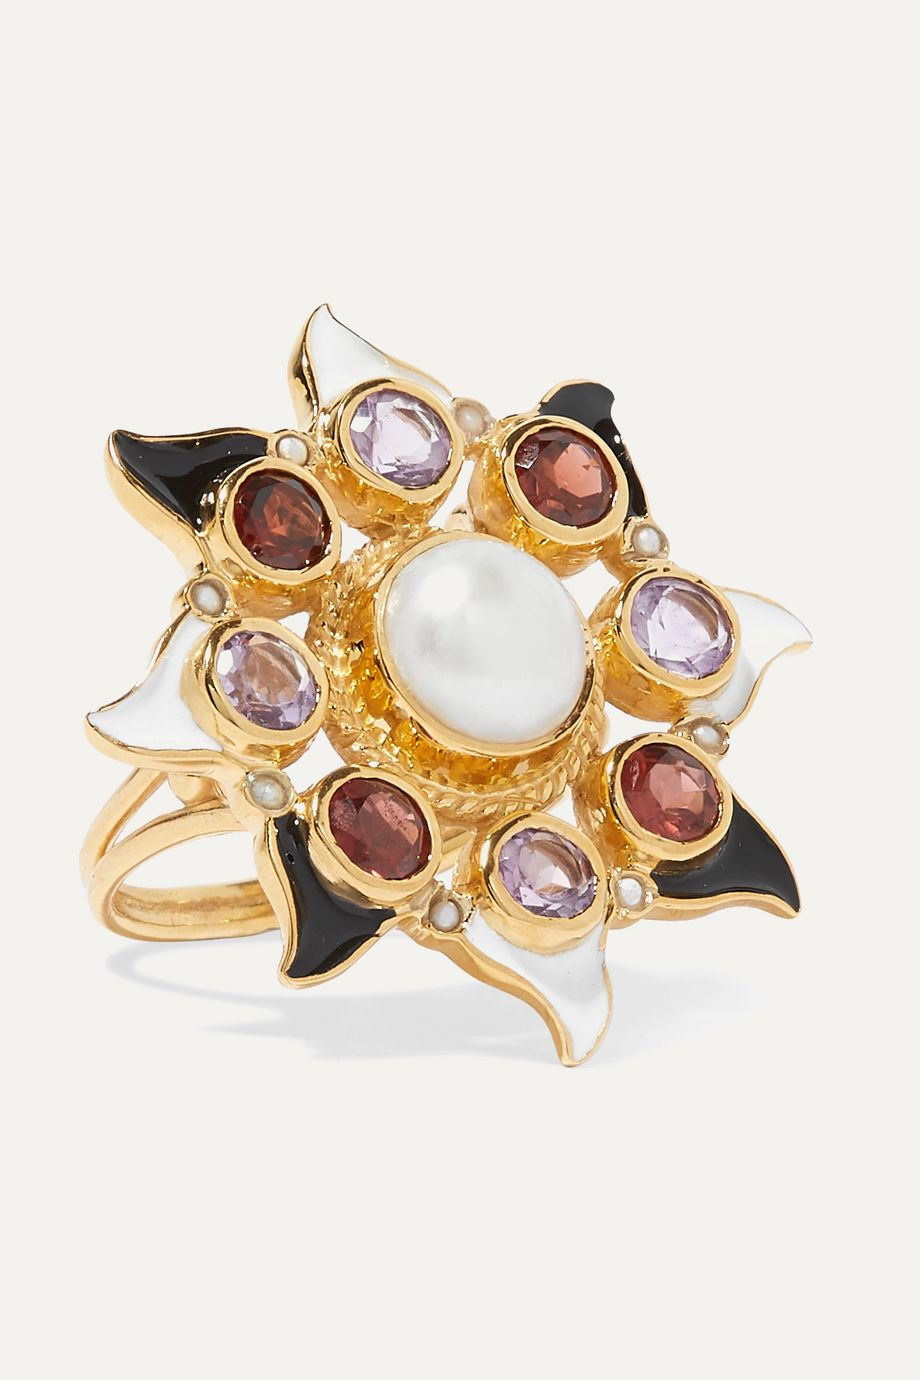 Percossi Papi Gold-plated and enamel multi-stone ring